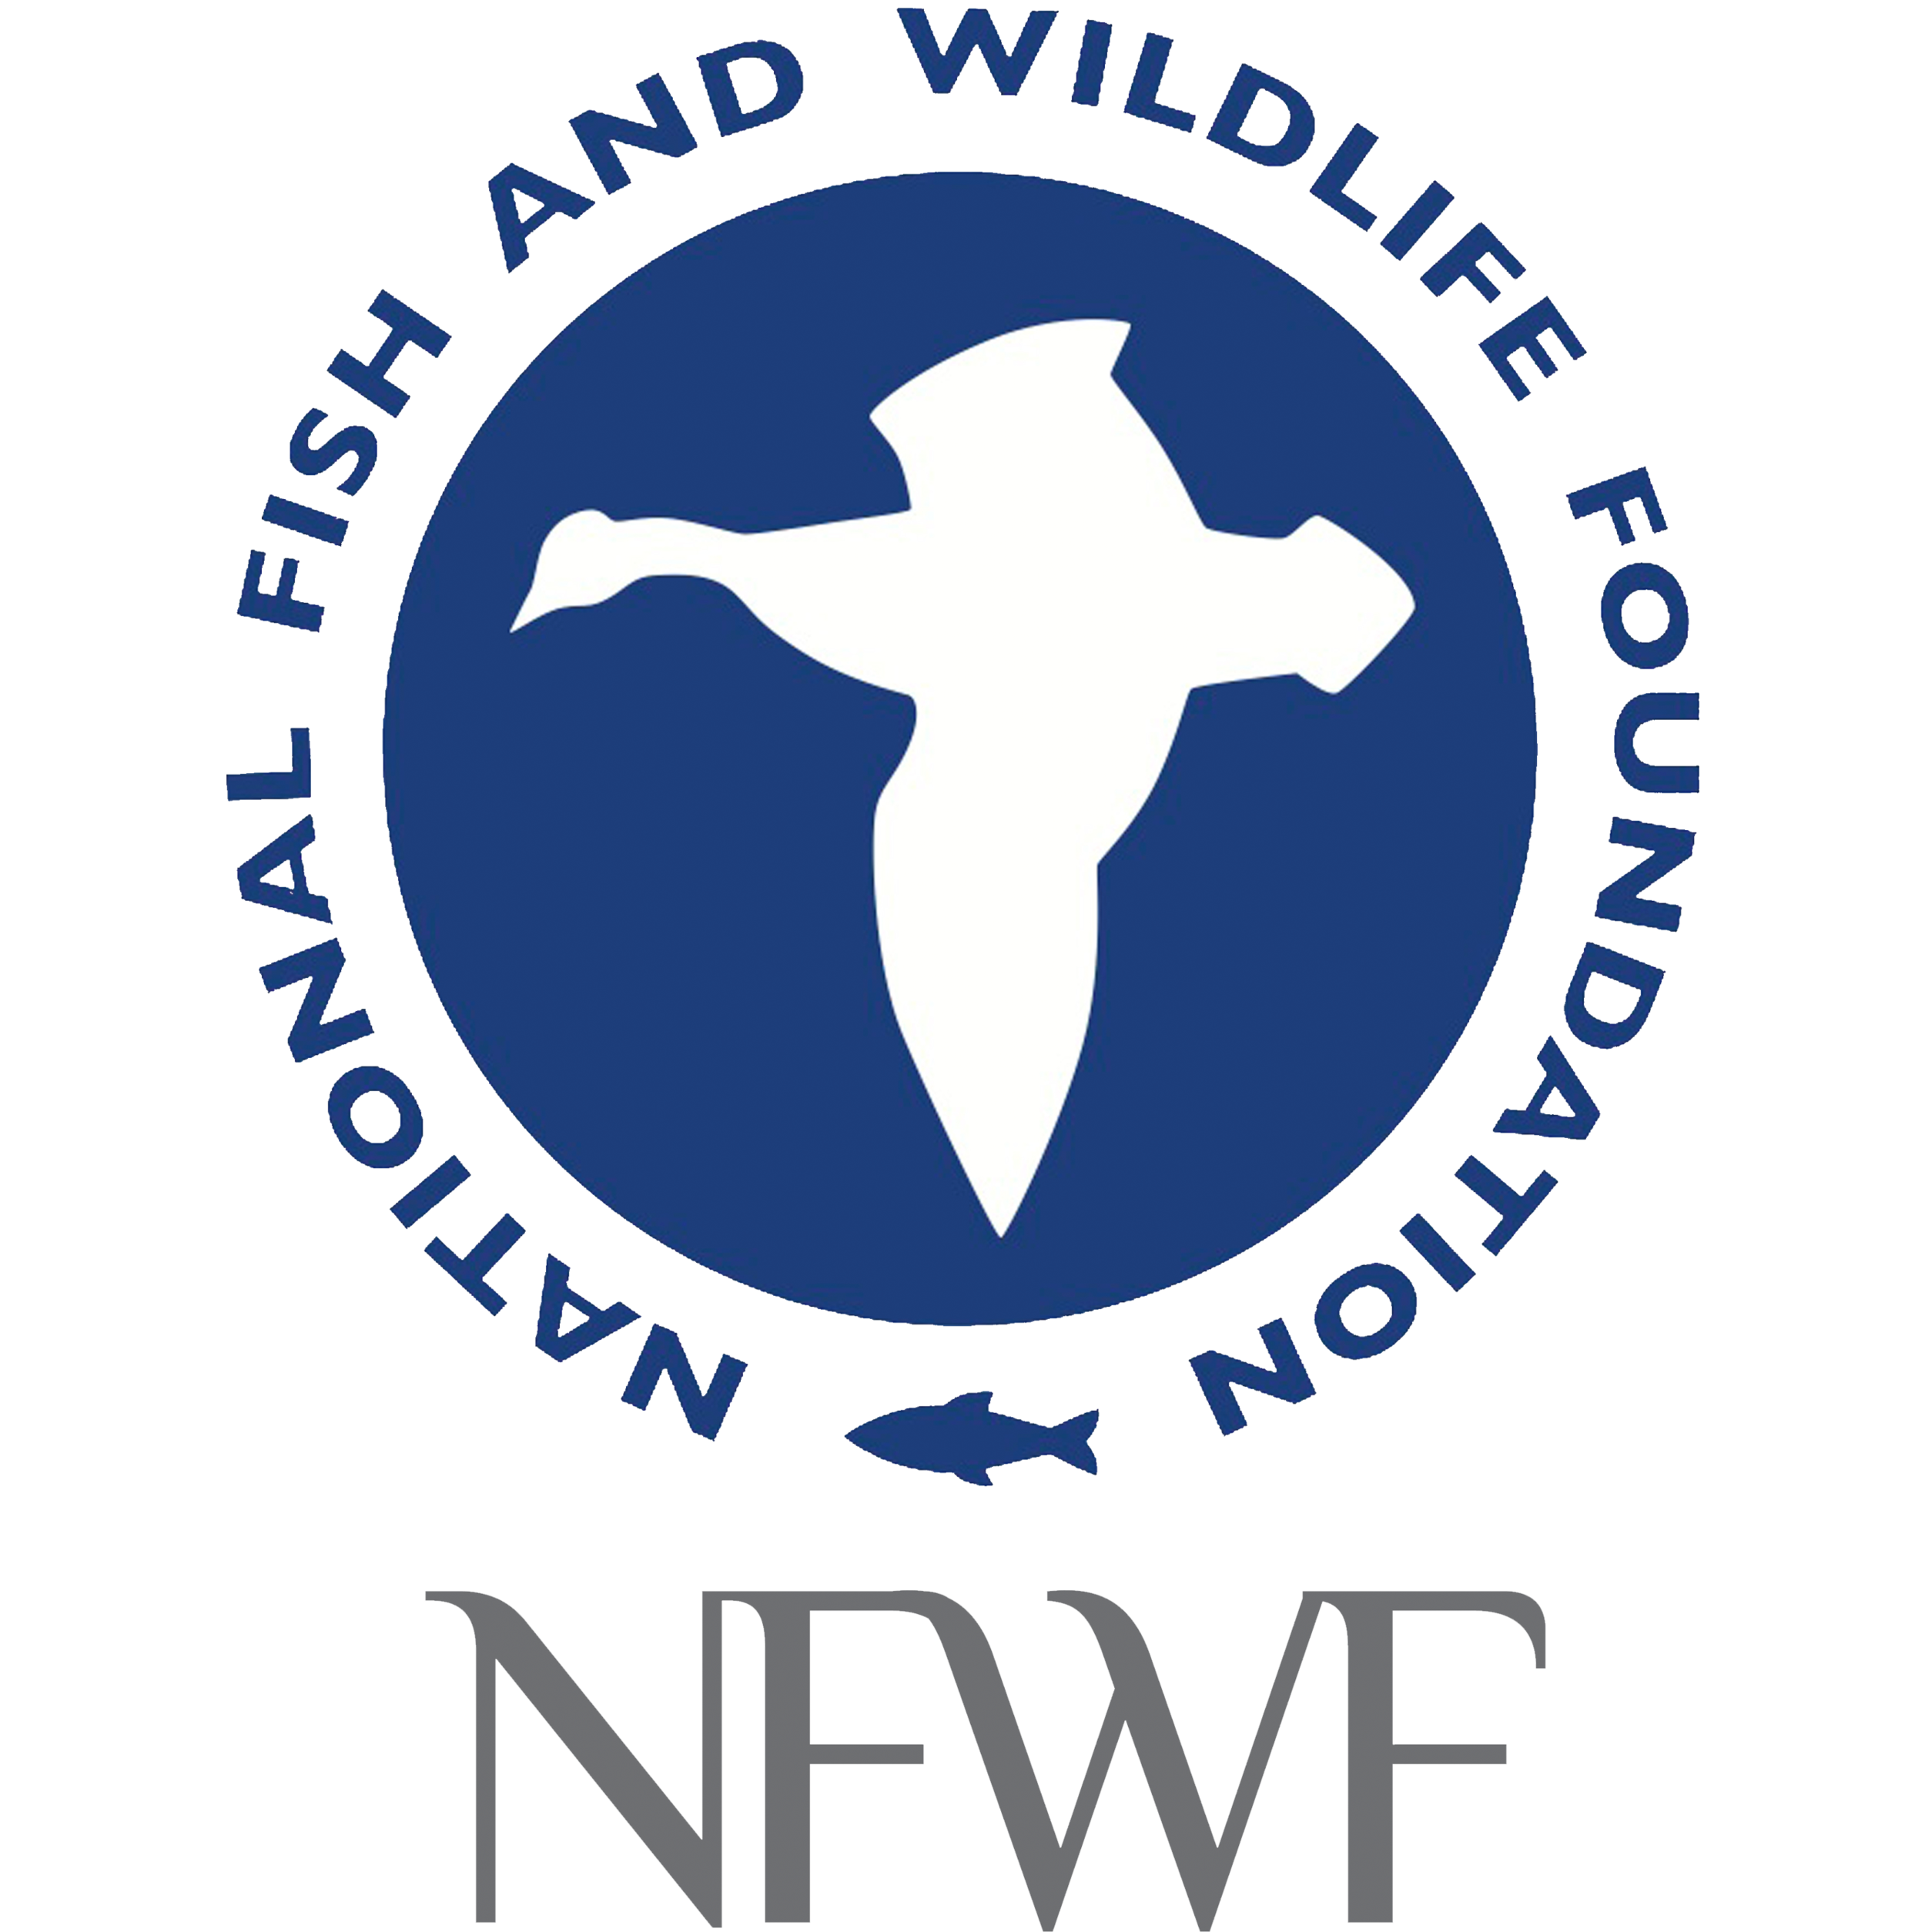 National Fish and Wildlife Foundation - NFWF supports conservation efforts in all 50 states. Projects are rigorously evaluated and awarded to some of the nation's largest environmental organizations and smallest alike. NFWF focuses on bringing all parties to the table, getting results, and building a better future for our world.